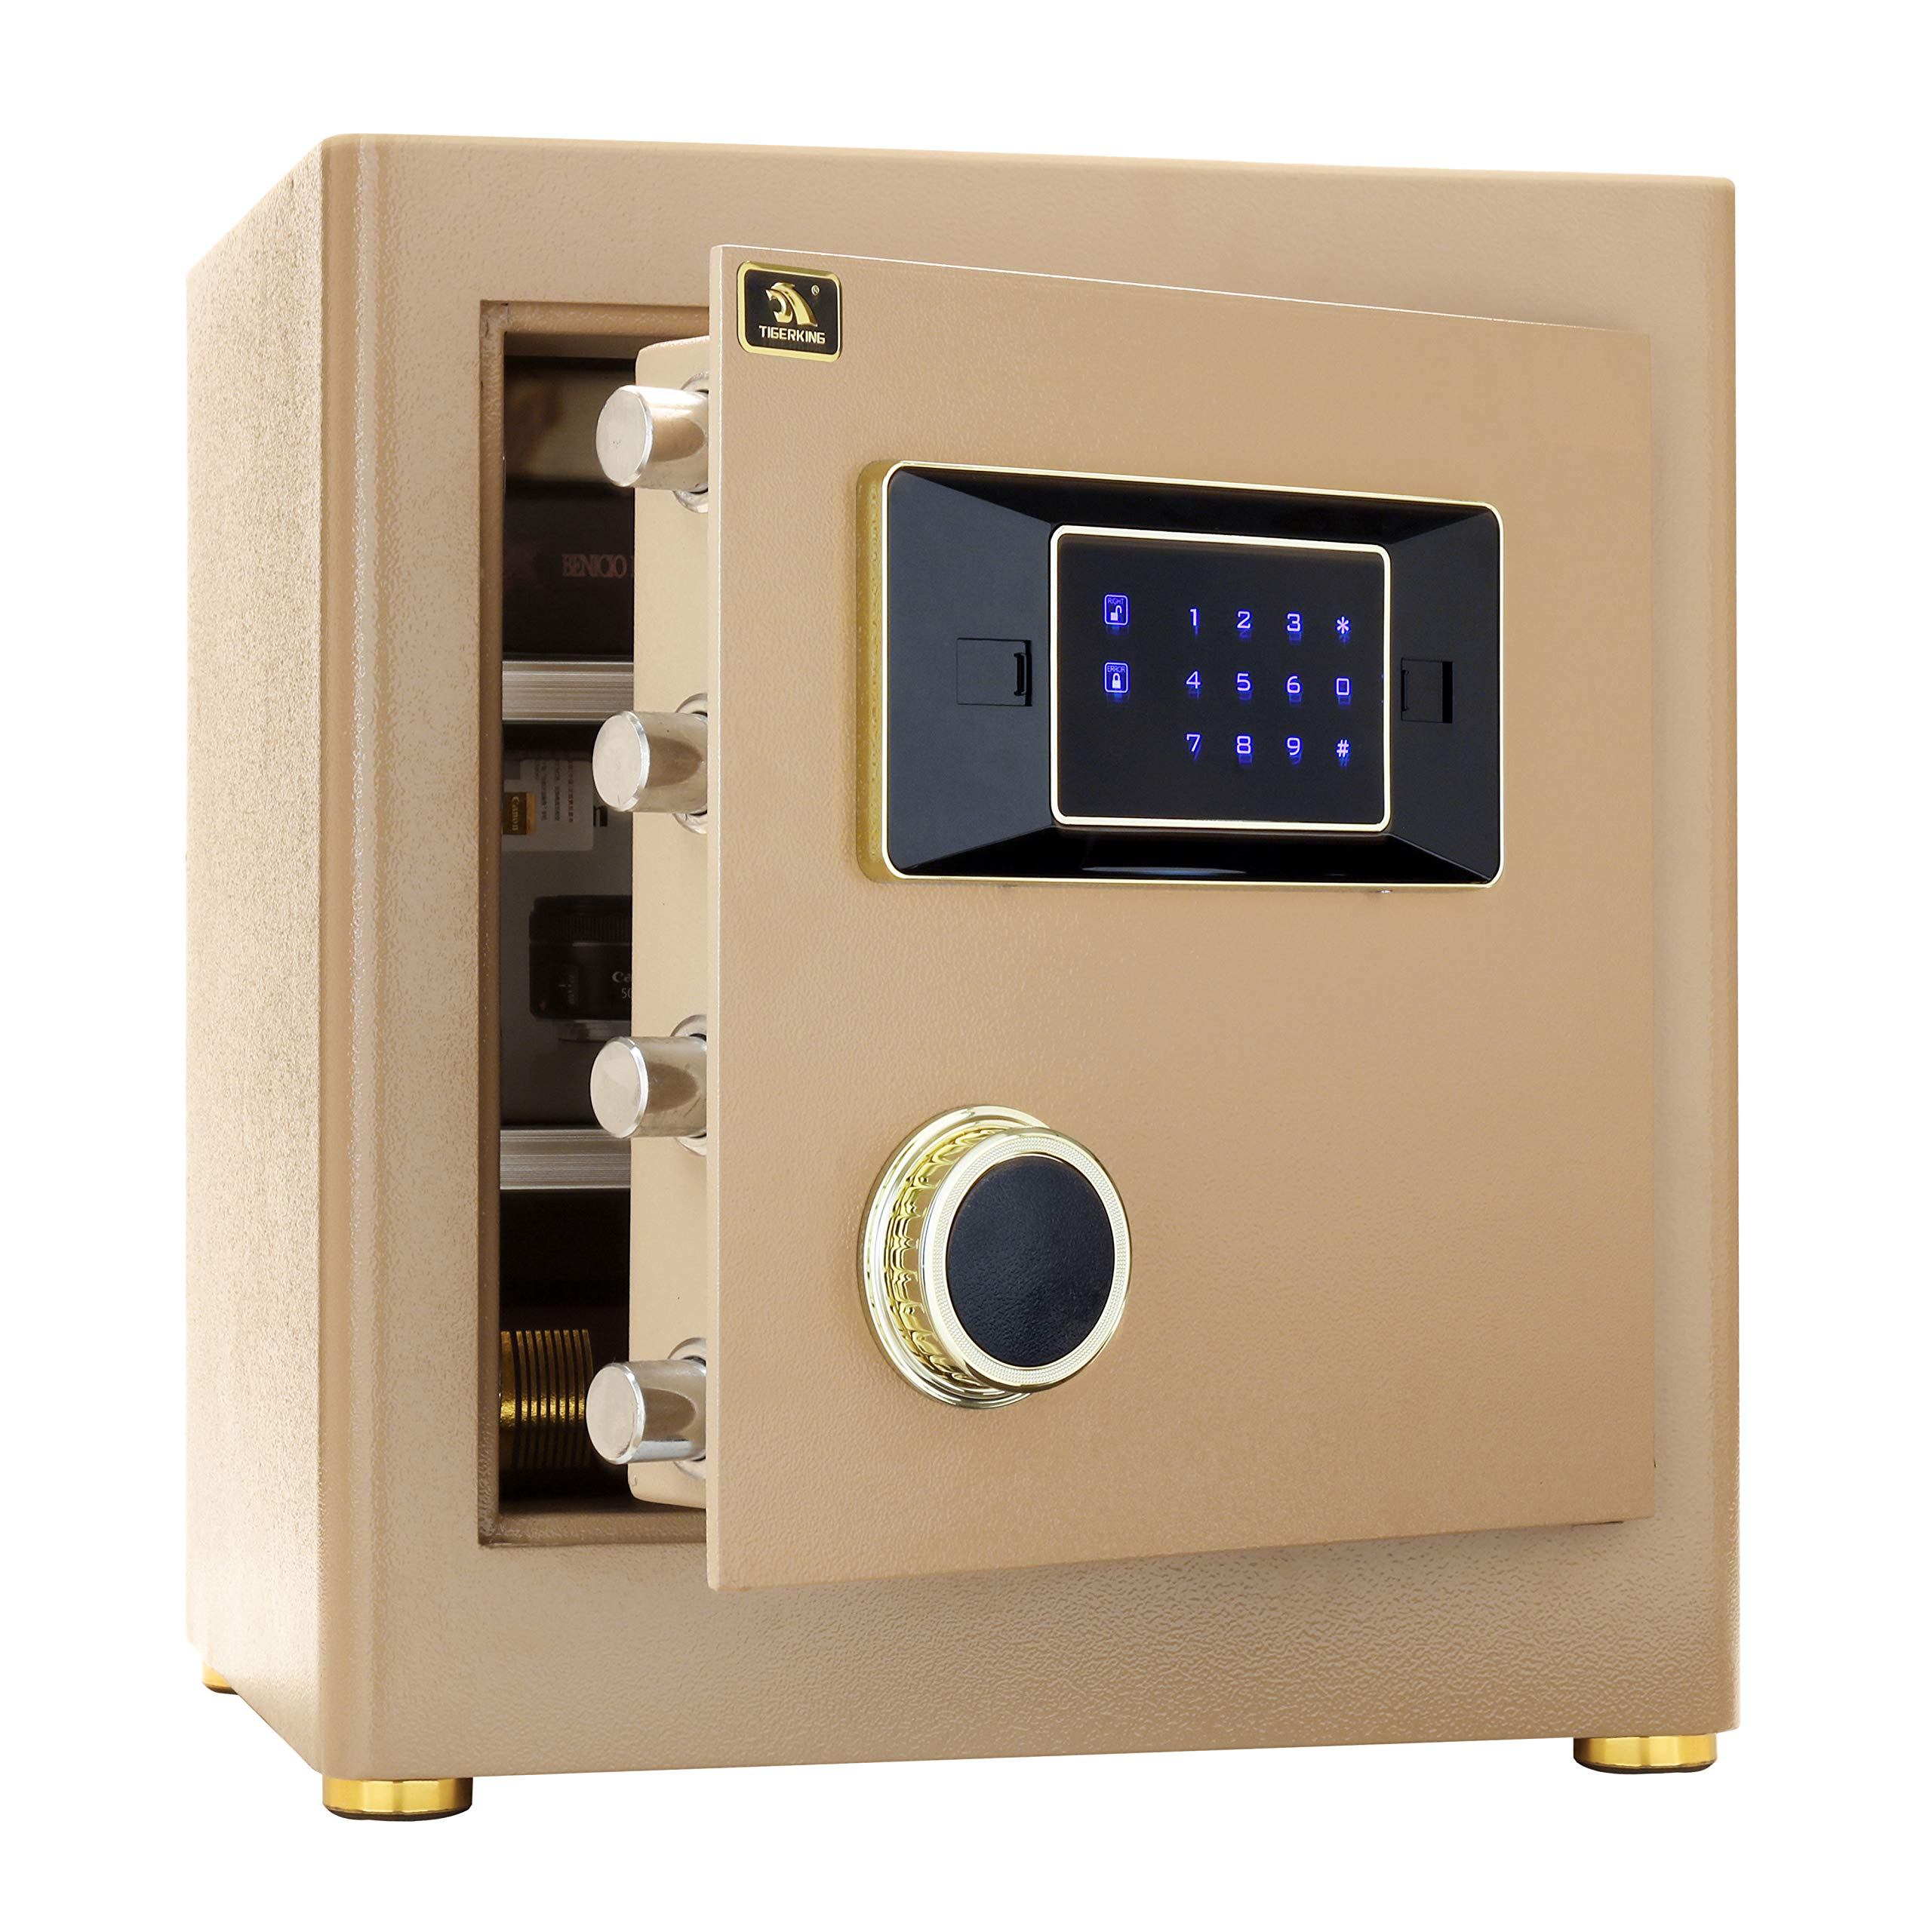 Digital Security Safe Box for Home Office Double Safety Key Lock and Password 1.4 Cubic Feet by TIGERKING by TIGERKING